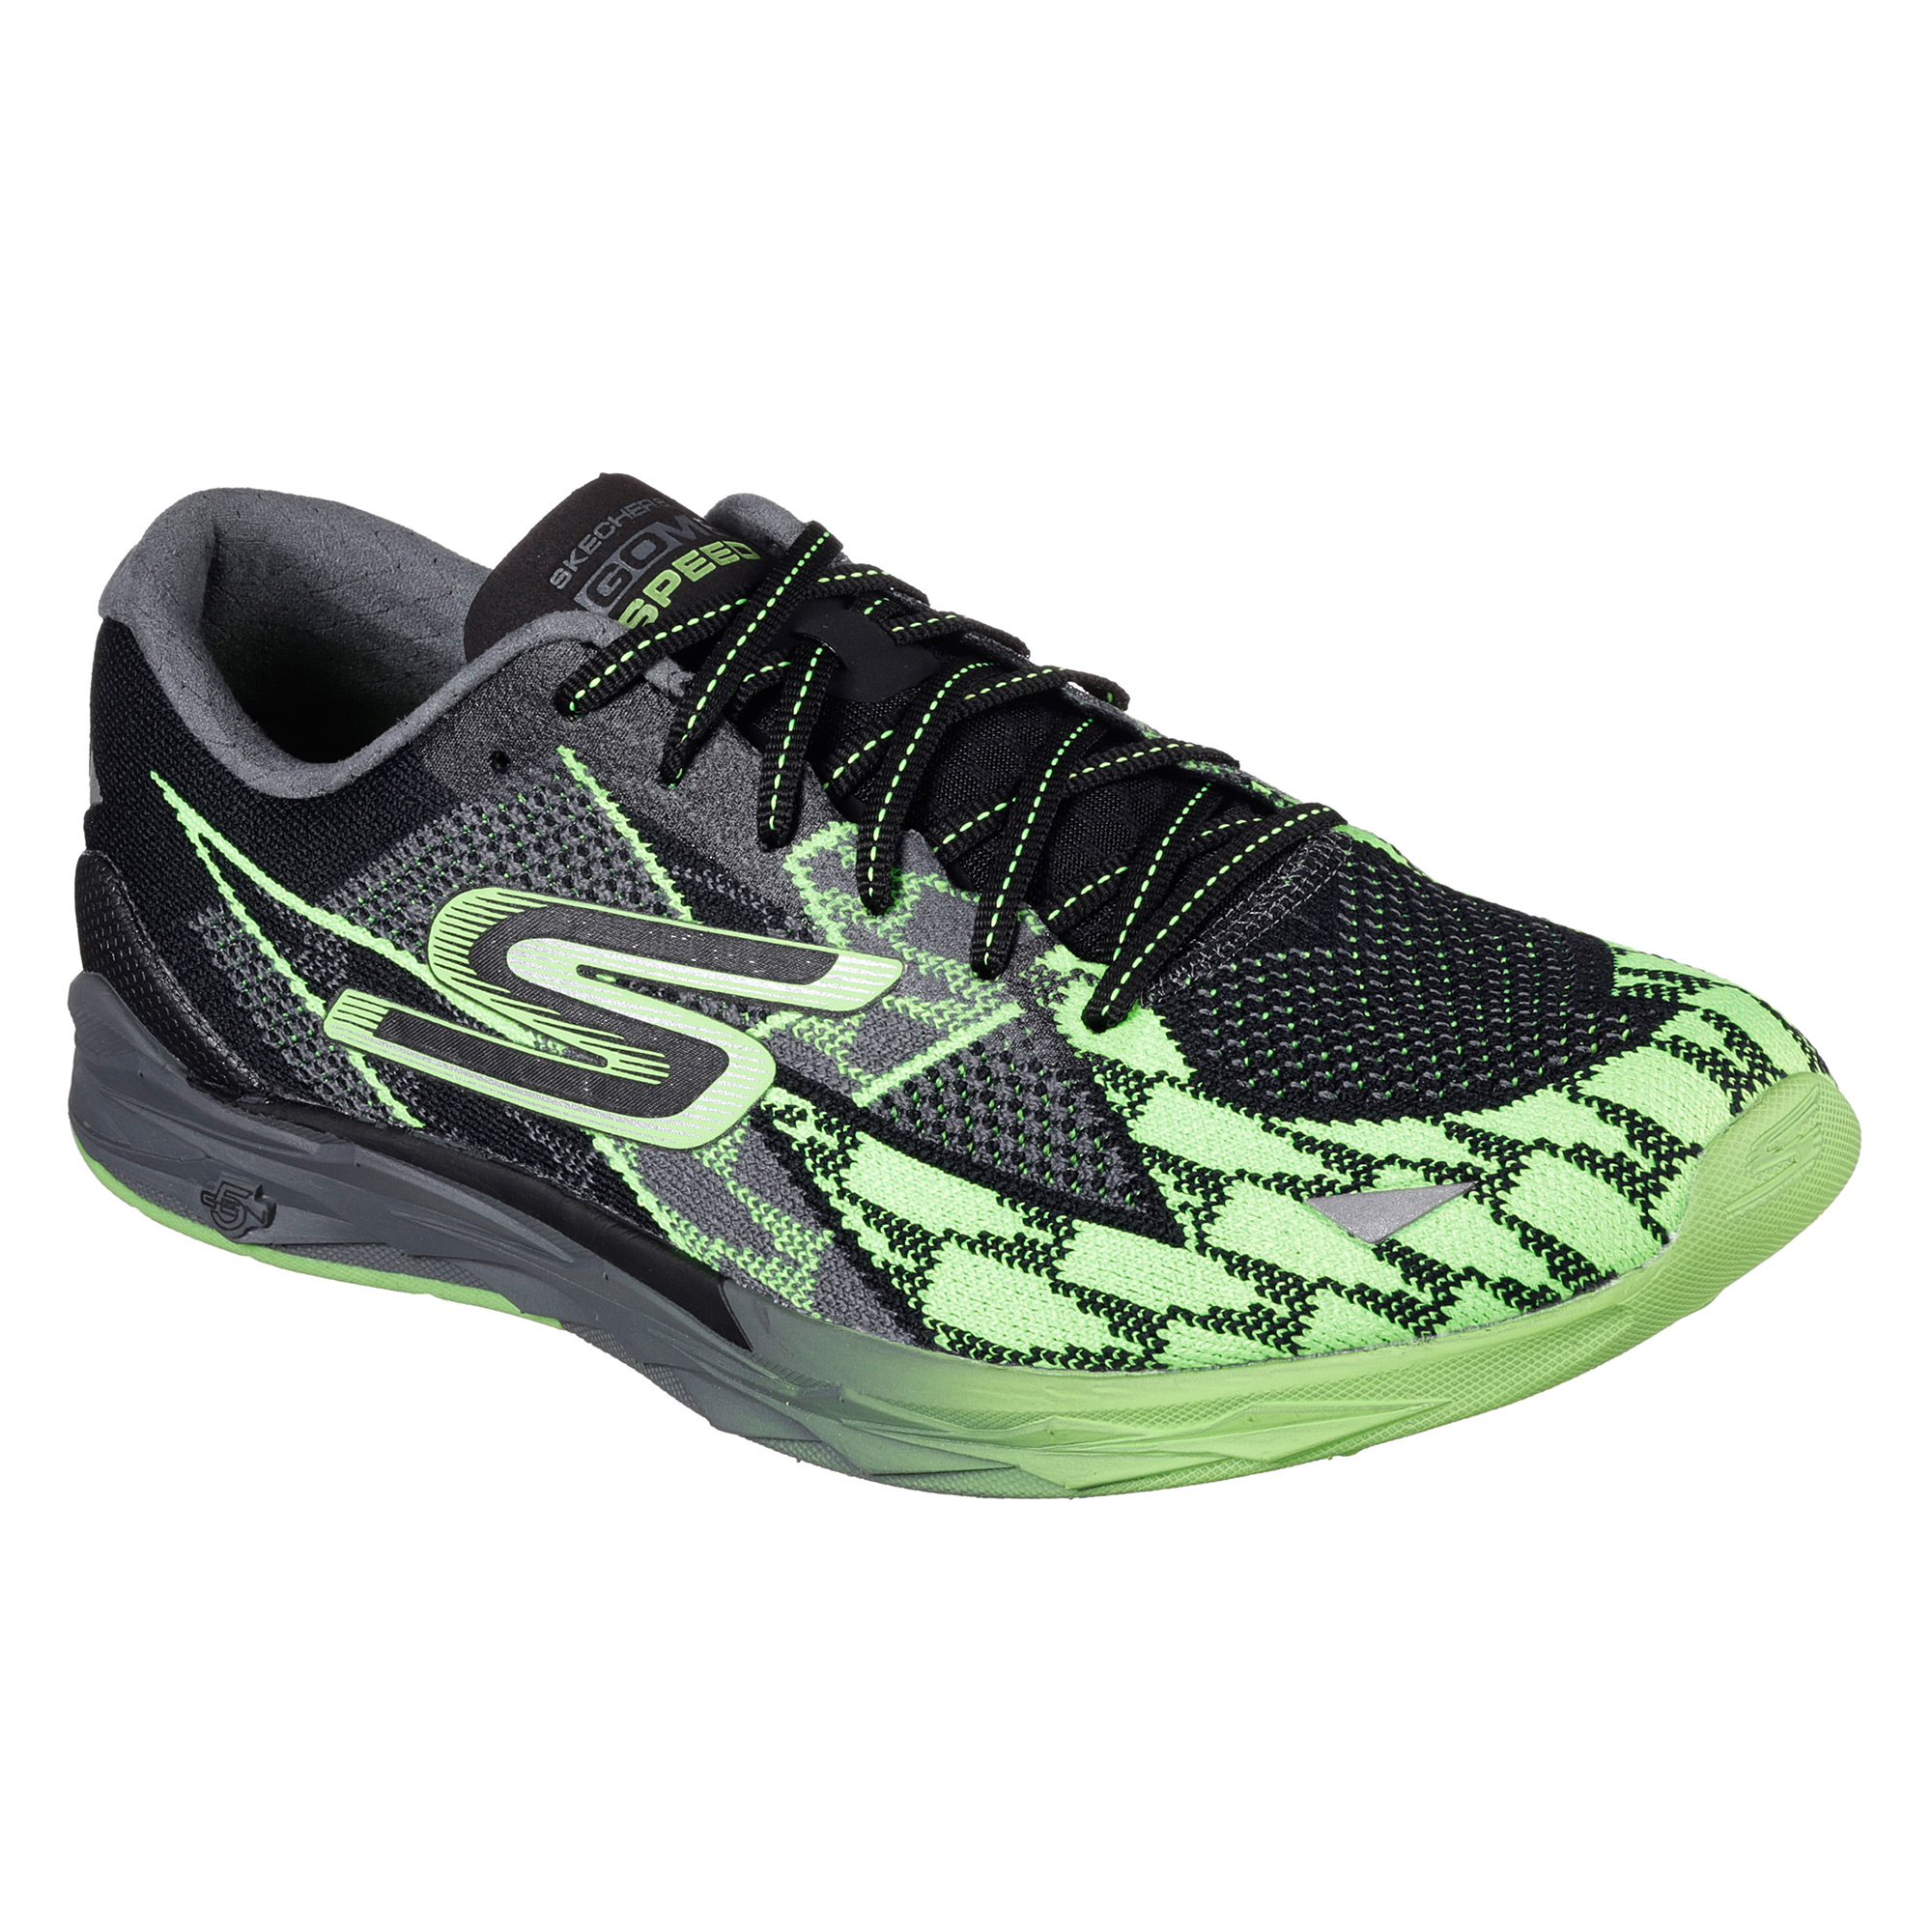 Skechers-Men-039-s-Go-Meb-Speed-4-